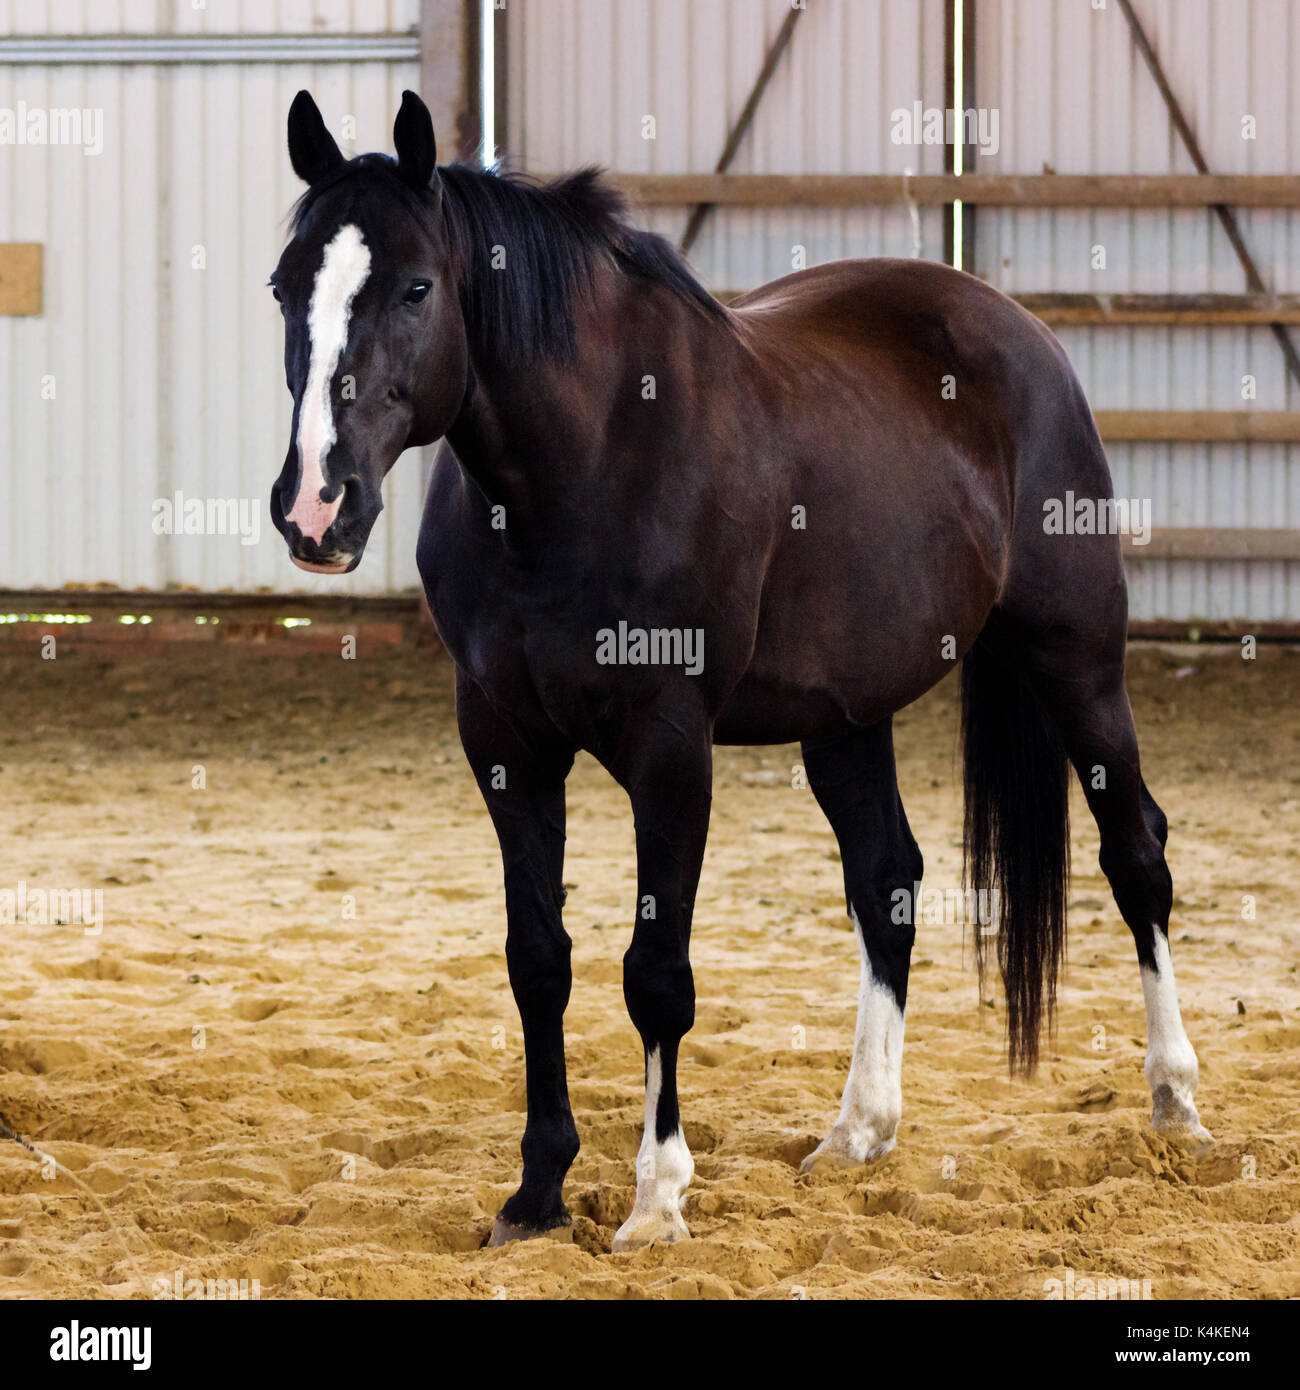 Brown horse learning to work without bridle on manege - Stock Image